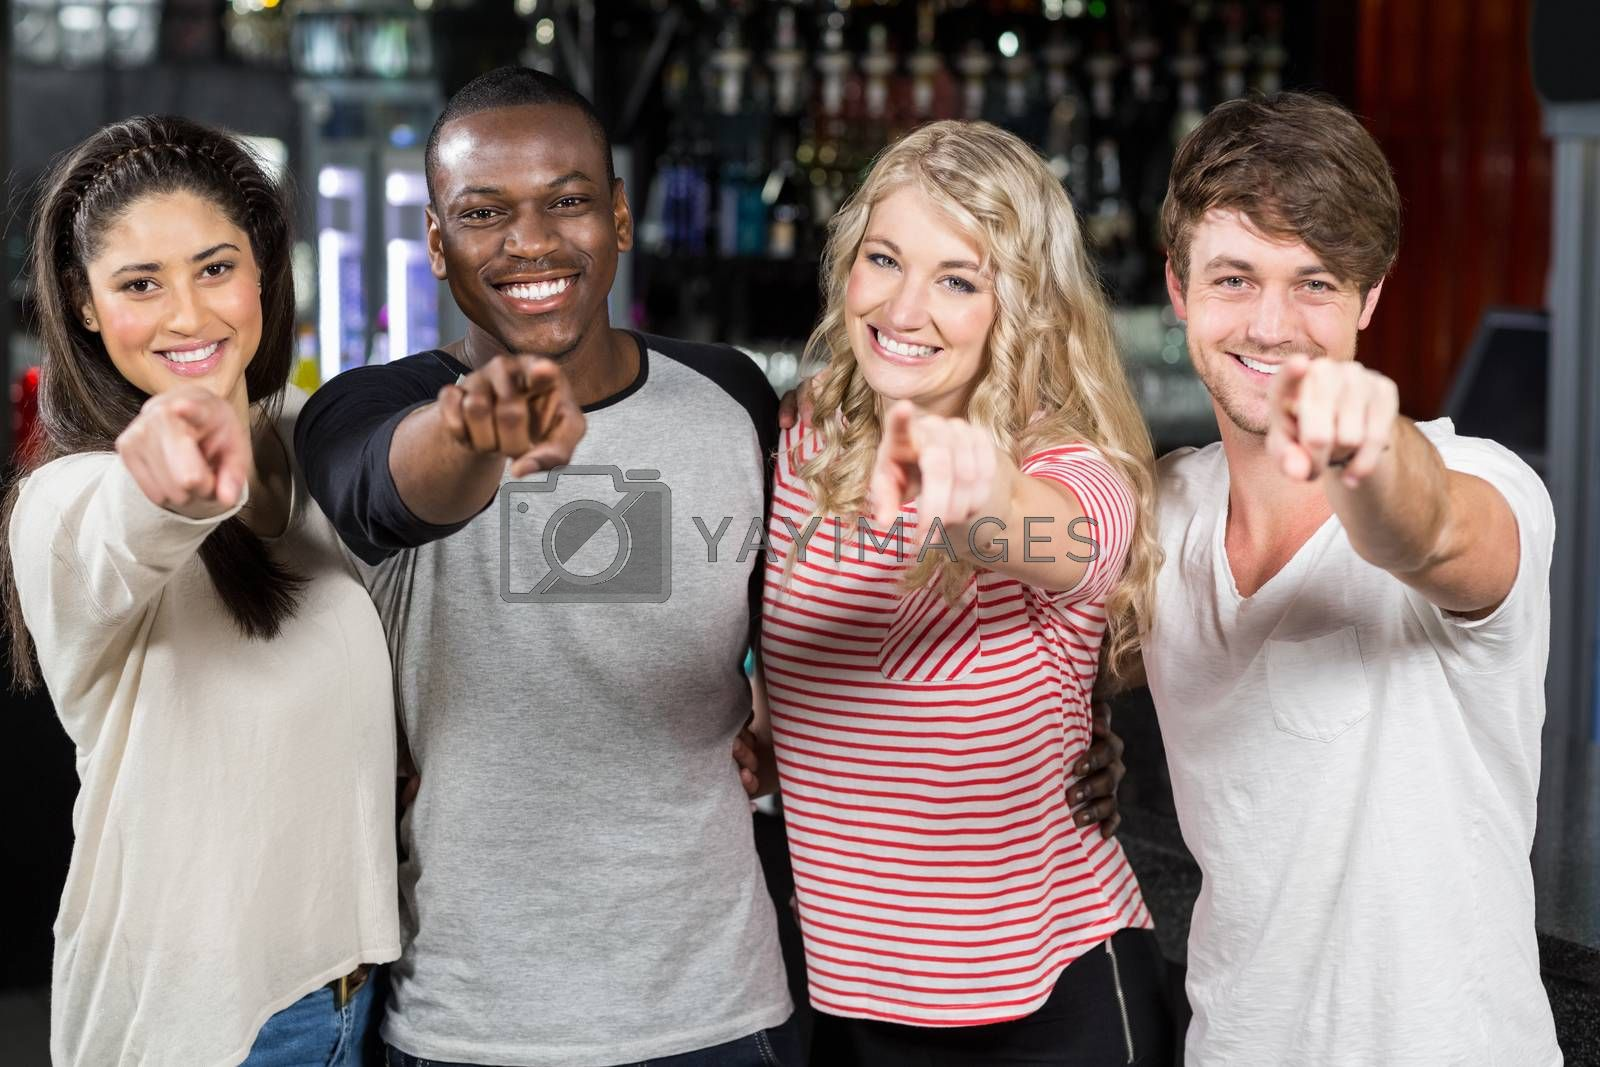 Friends pointing with finger in a bar